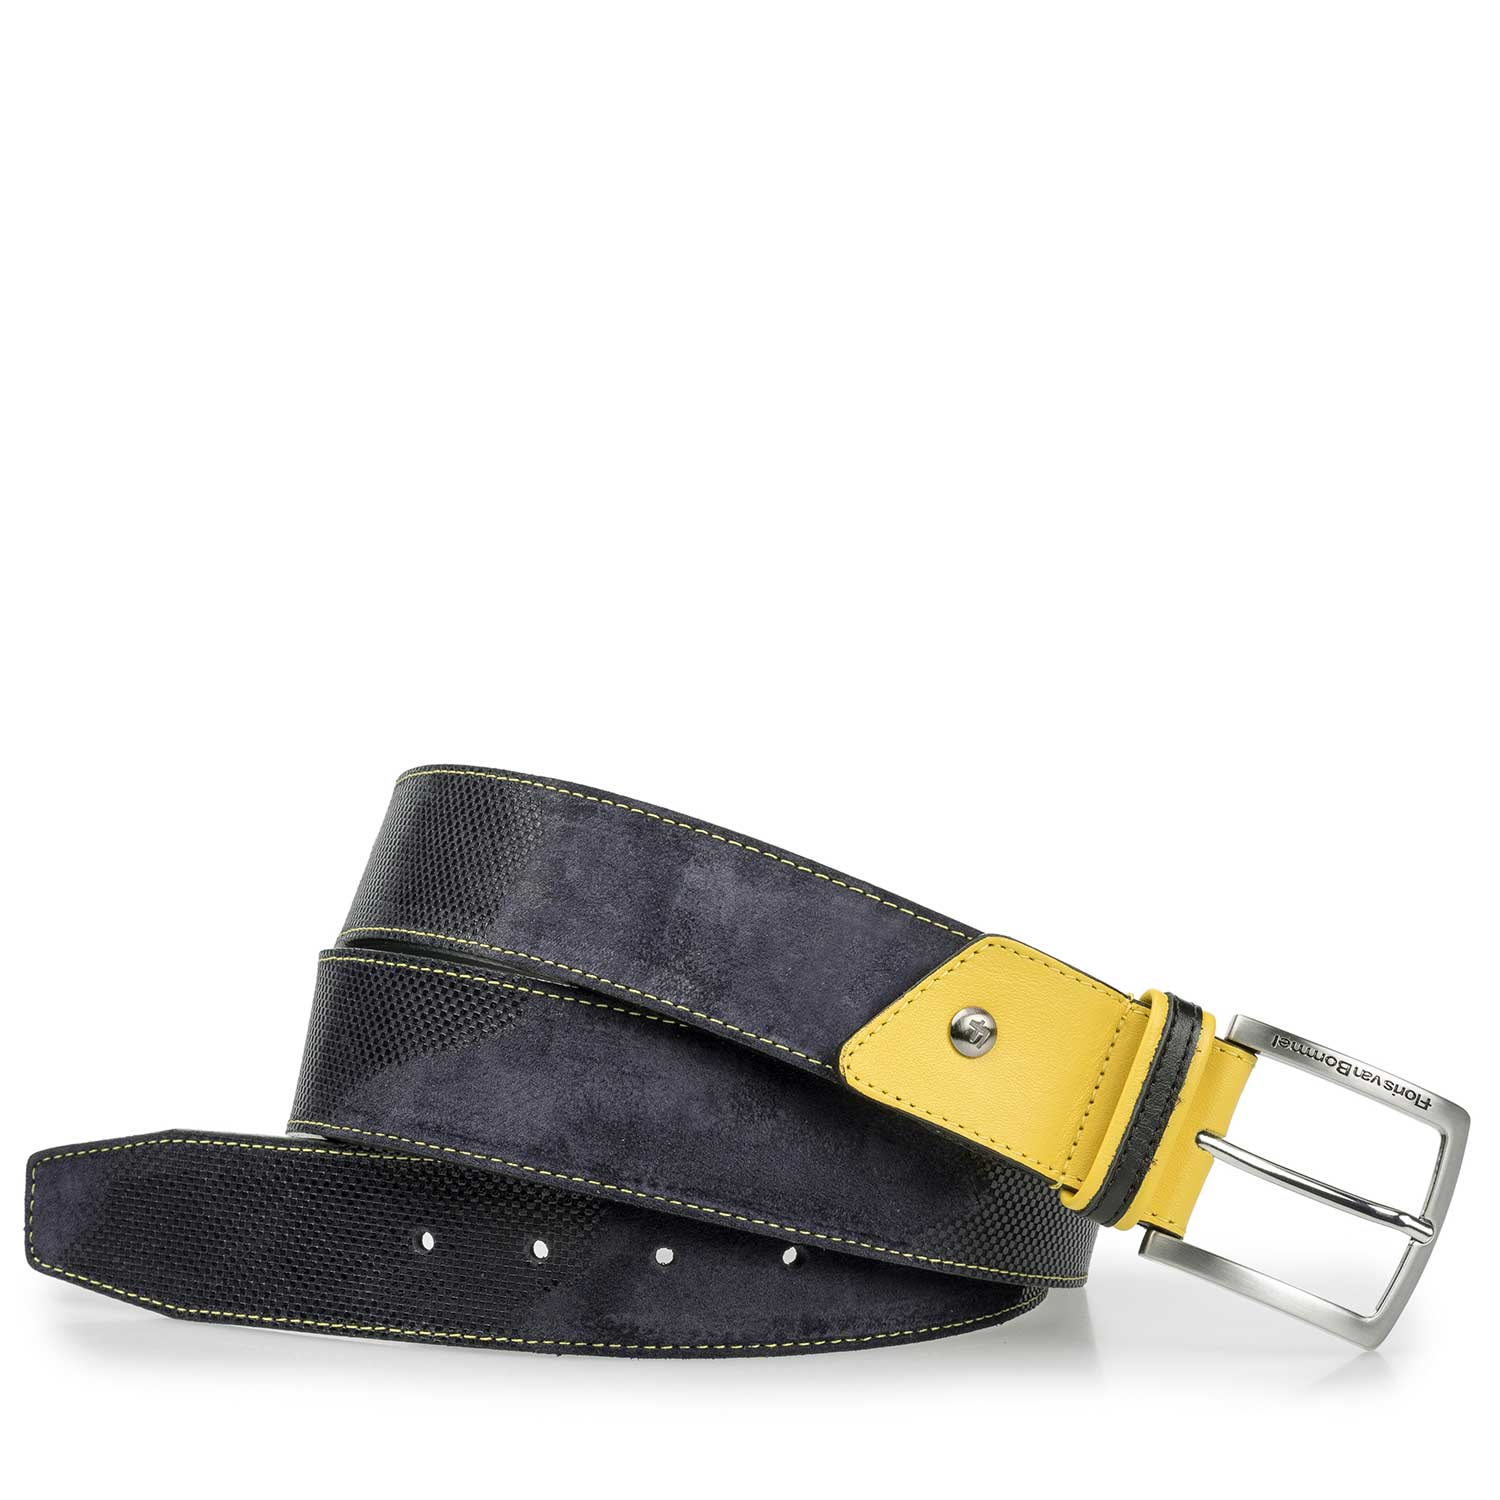 75193/01 - Blue / grey belt with yellow details